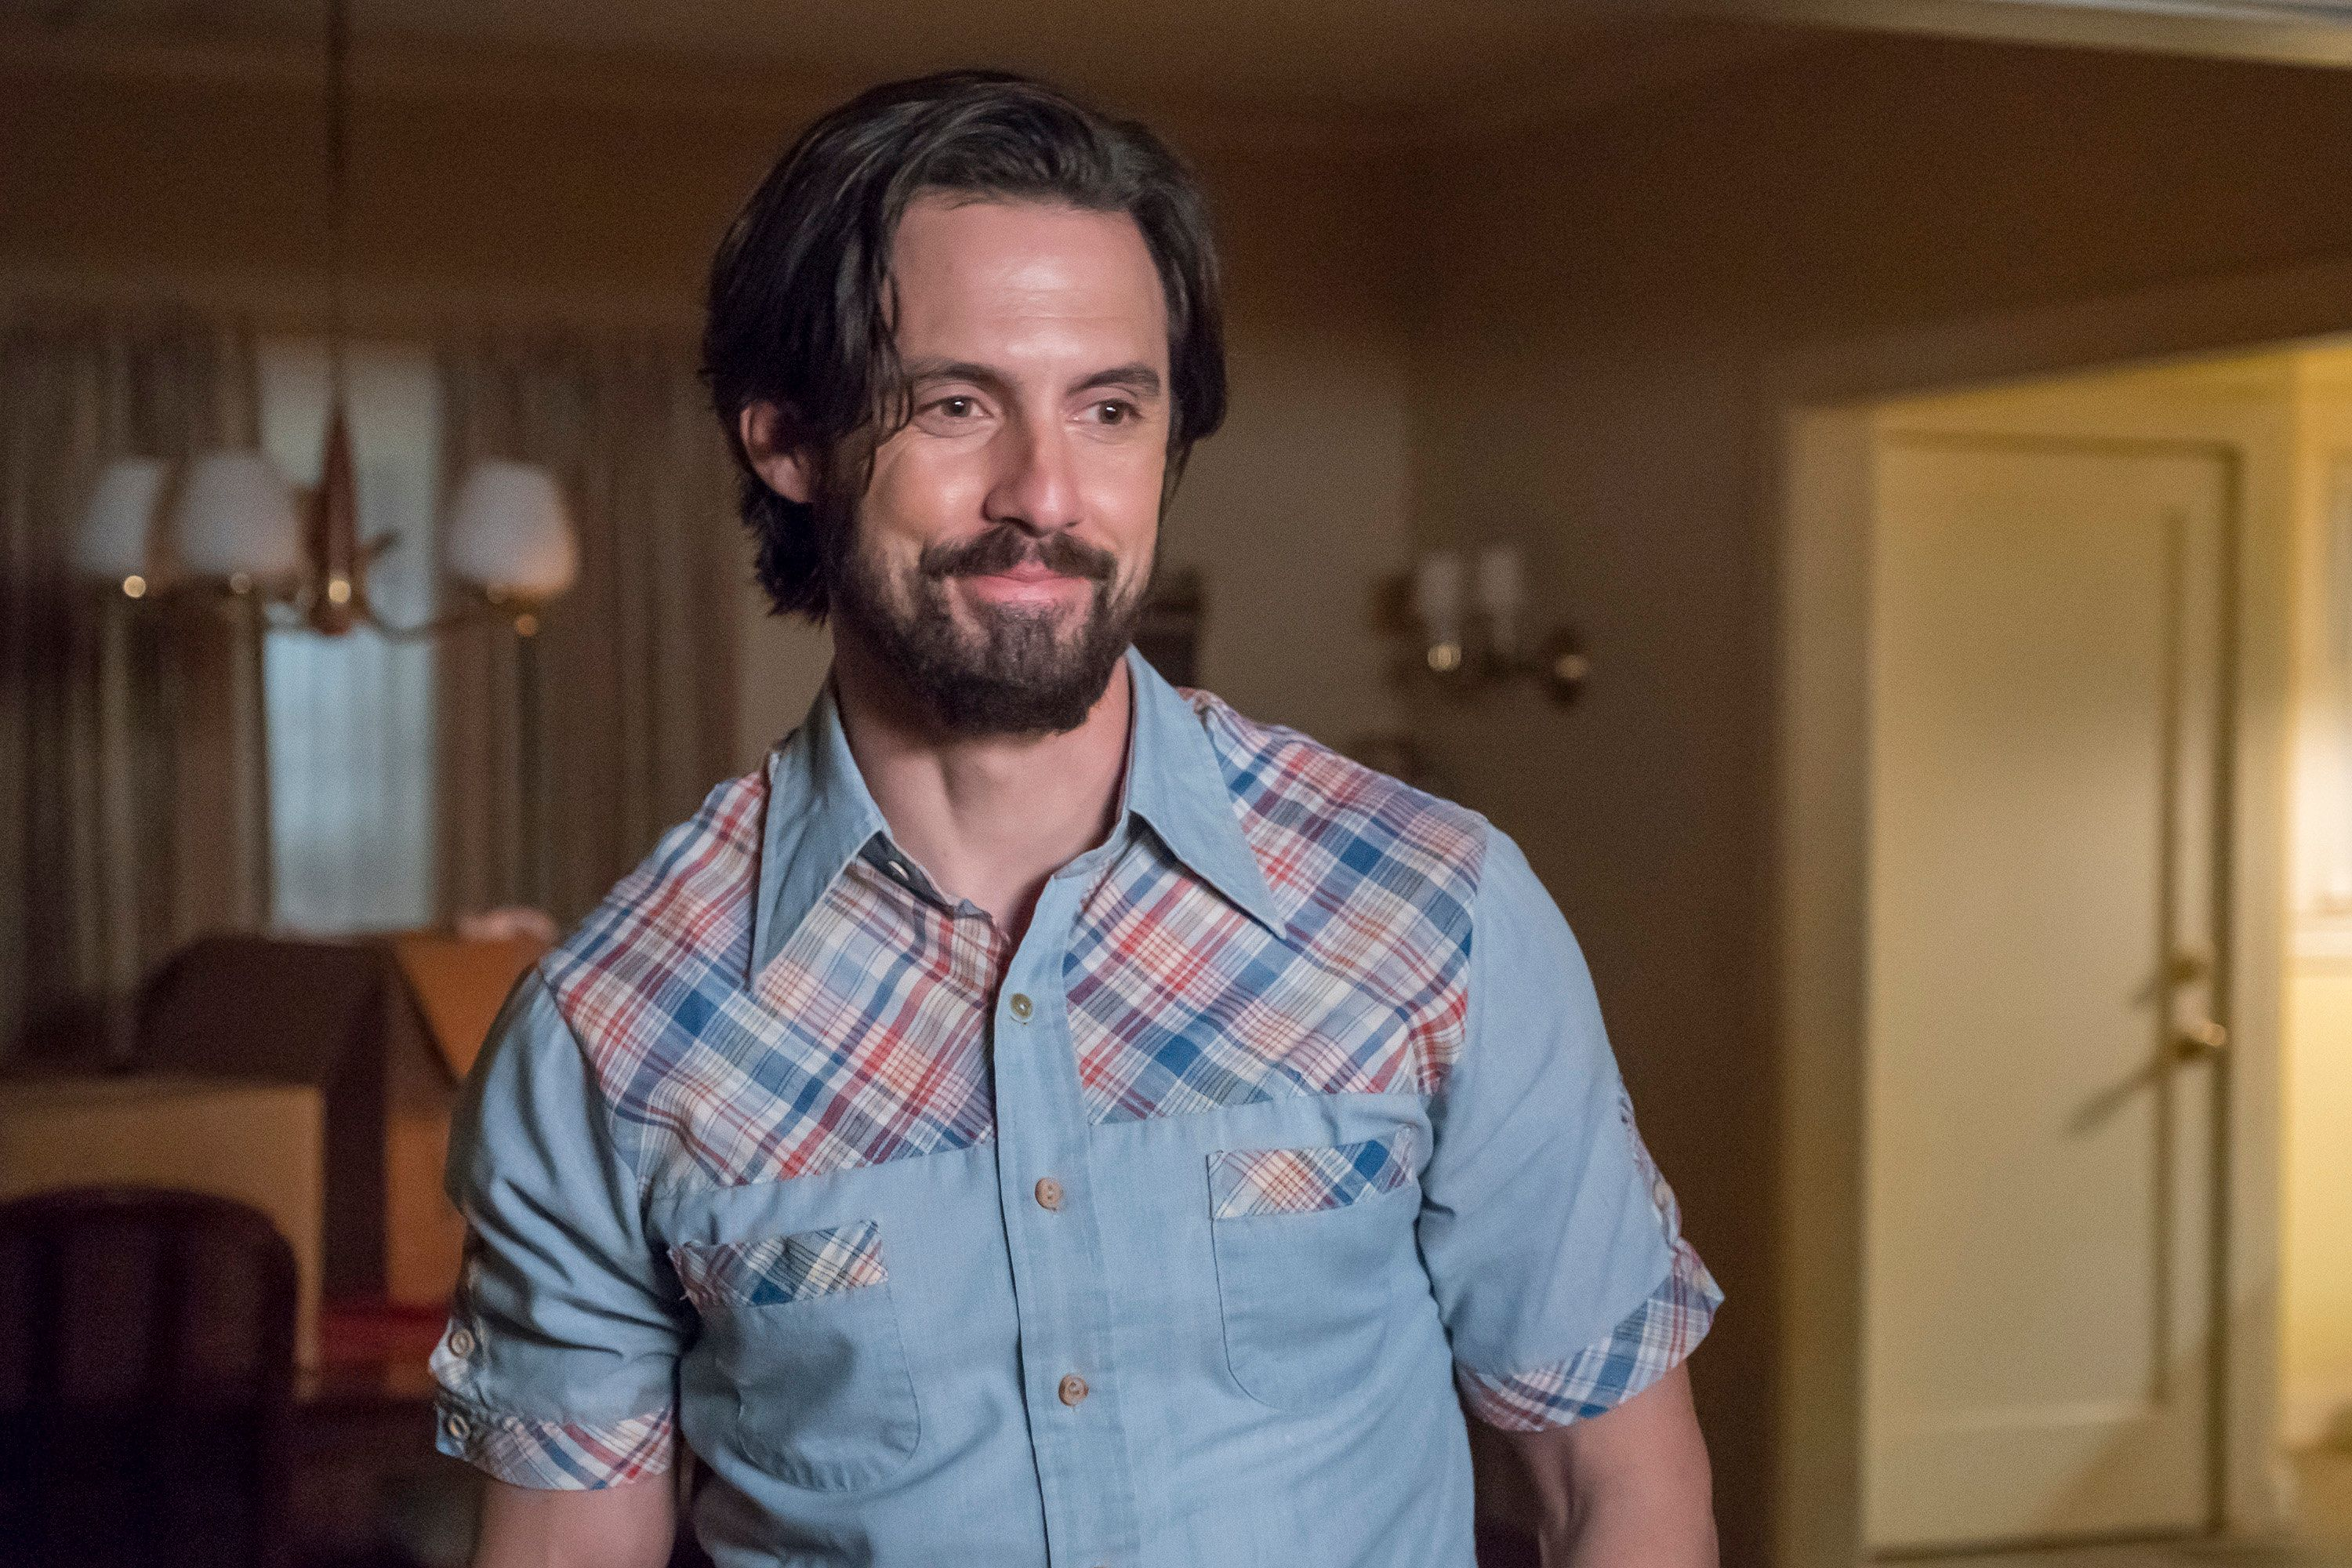 THIS IS US -- 'Vegas, Baby' Episode 216 -- Pictured: Milo Ventimiglia as Jack -- (Photo by: Ron Batzdorff/NBC/NBCU Photo Bank via Getty Images)